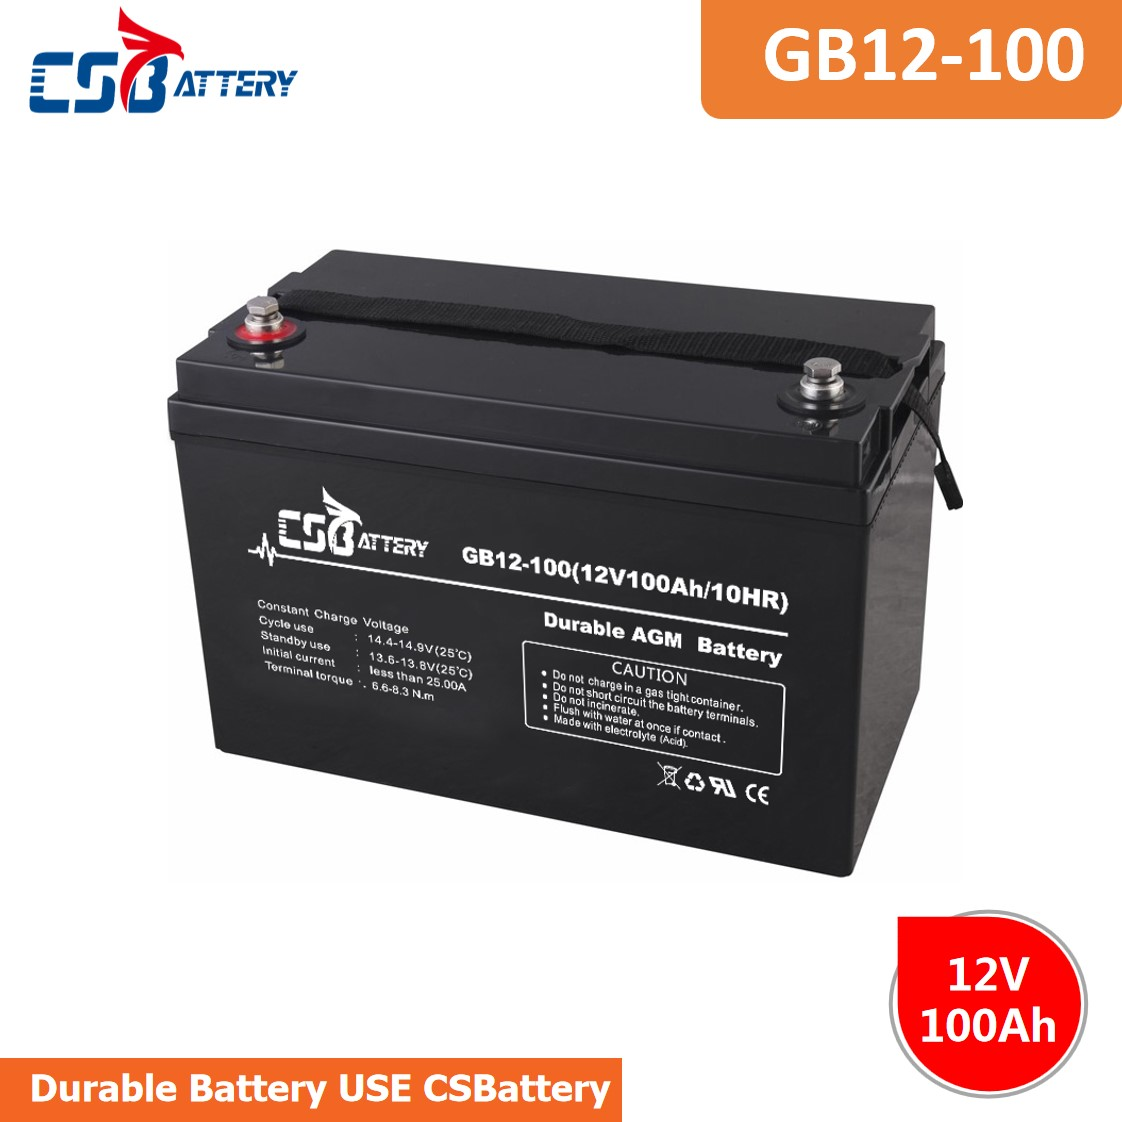 CSBattery 12V 100Ah power-storage  Lead acid battery for Electric-vehicle/Fireproof-power-supply/backup-power-supply